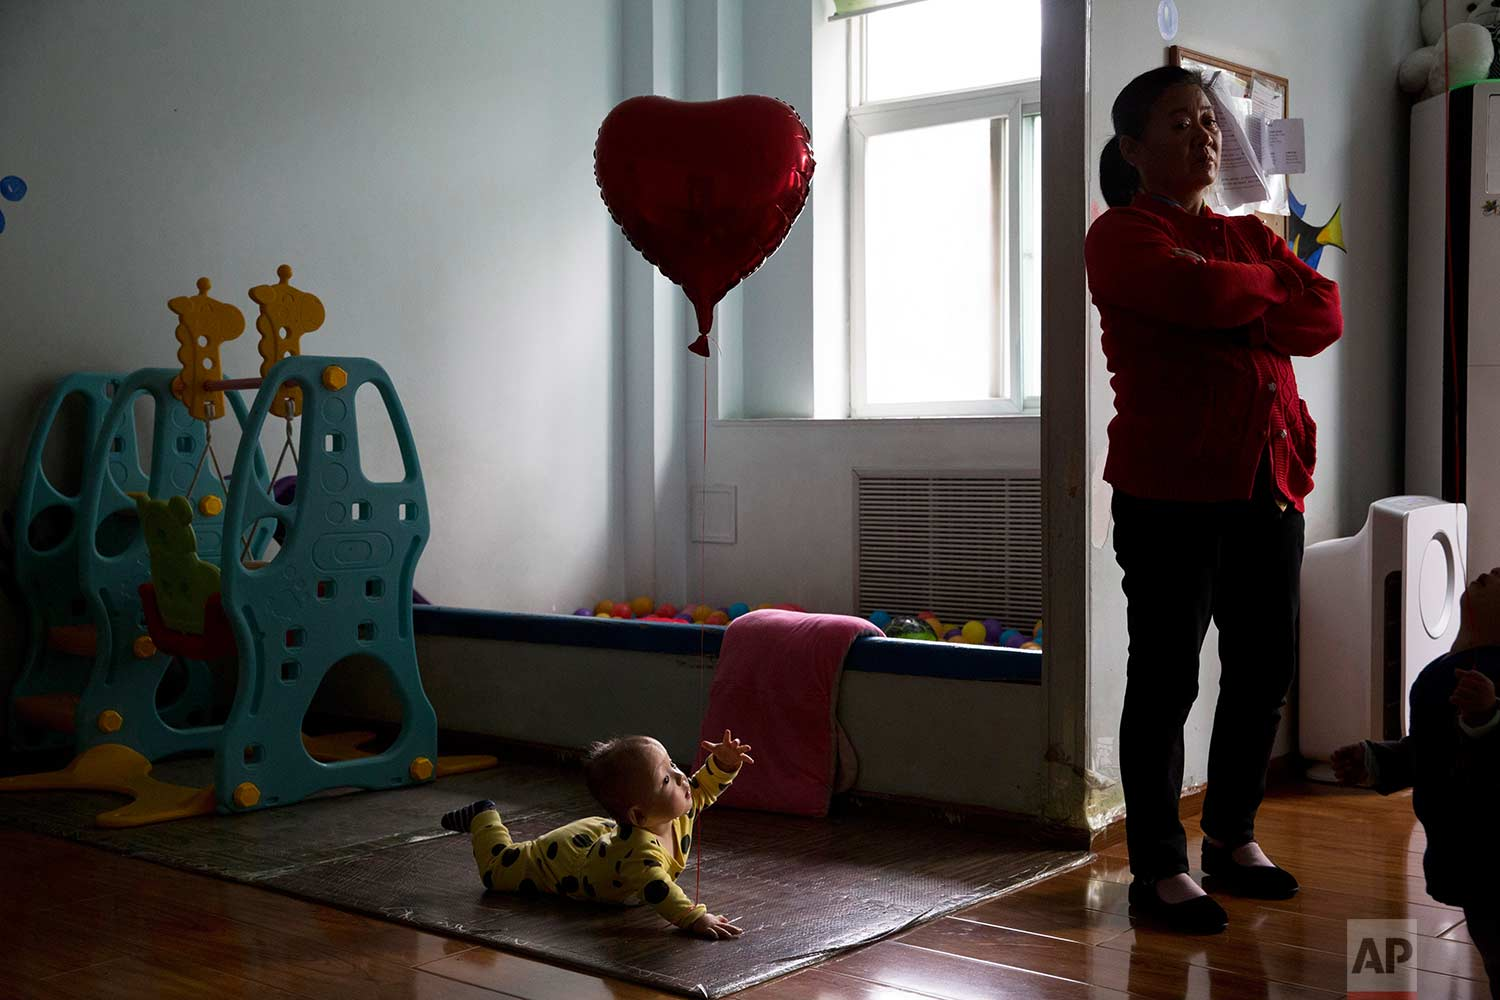 A child reaches towards a minder at a foster home of the New Hope Foundation, a charity that provides care and medical treatment for babies with deformities that can be corrected with surgery, on the outskirts of Beijing, China, on Wednesday, Oct. 11, 2017. (AP Photo/Ng Han Guan)